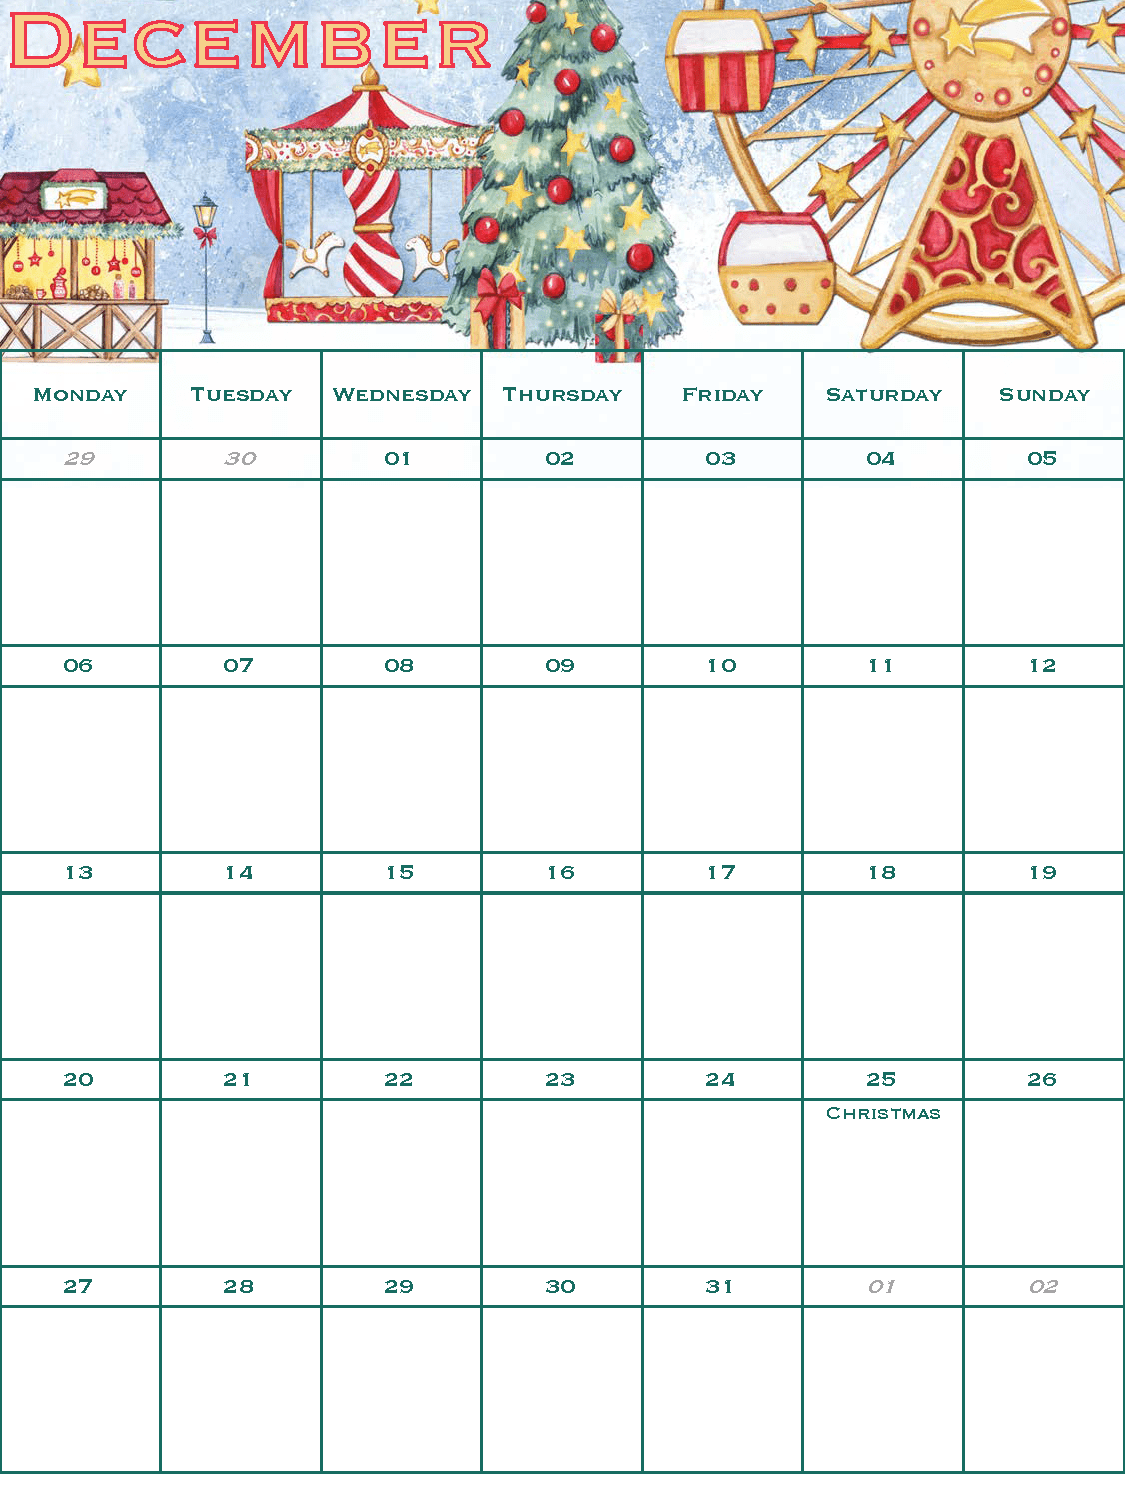 2021 Free Christmas Planner - Good Life of a Houewife